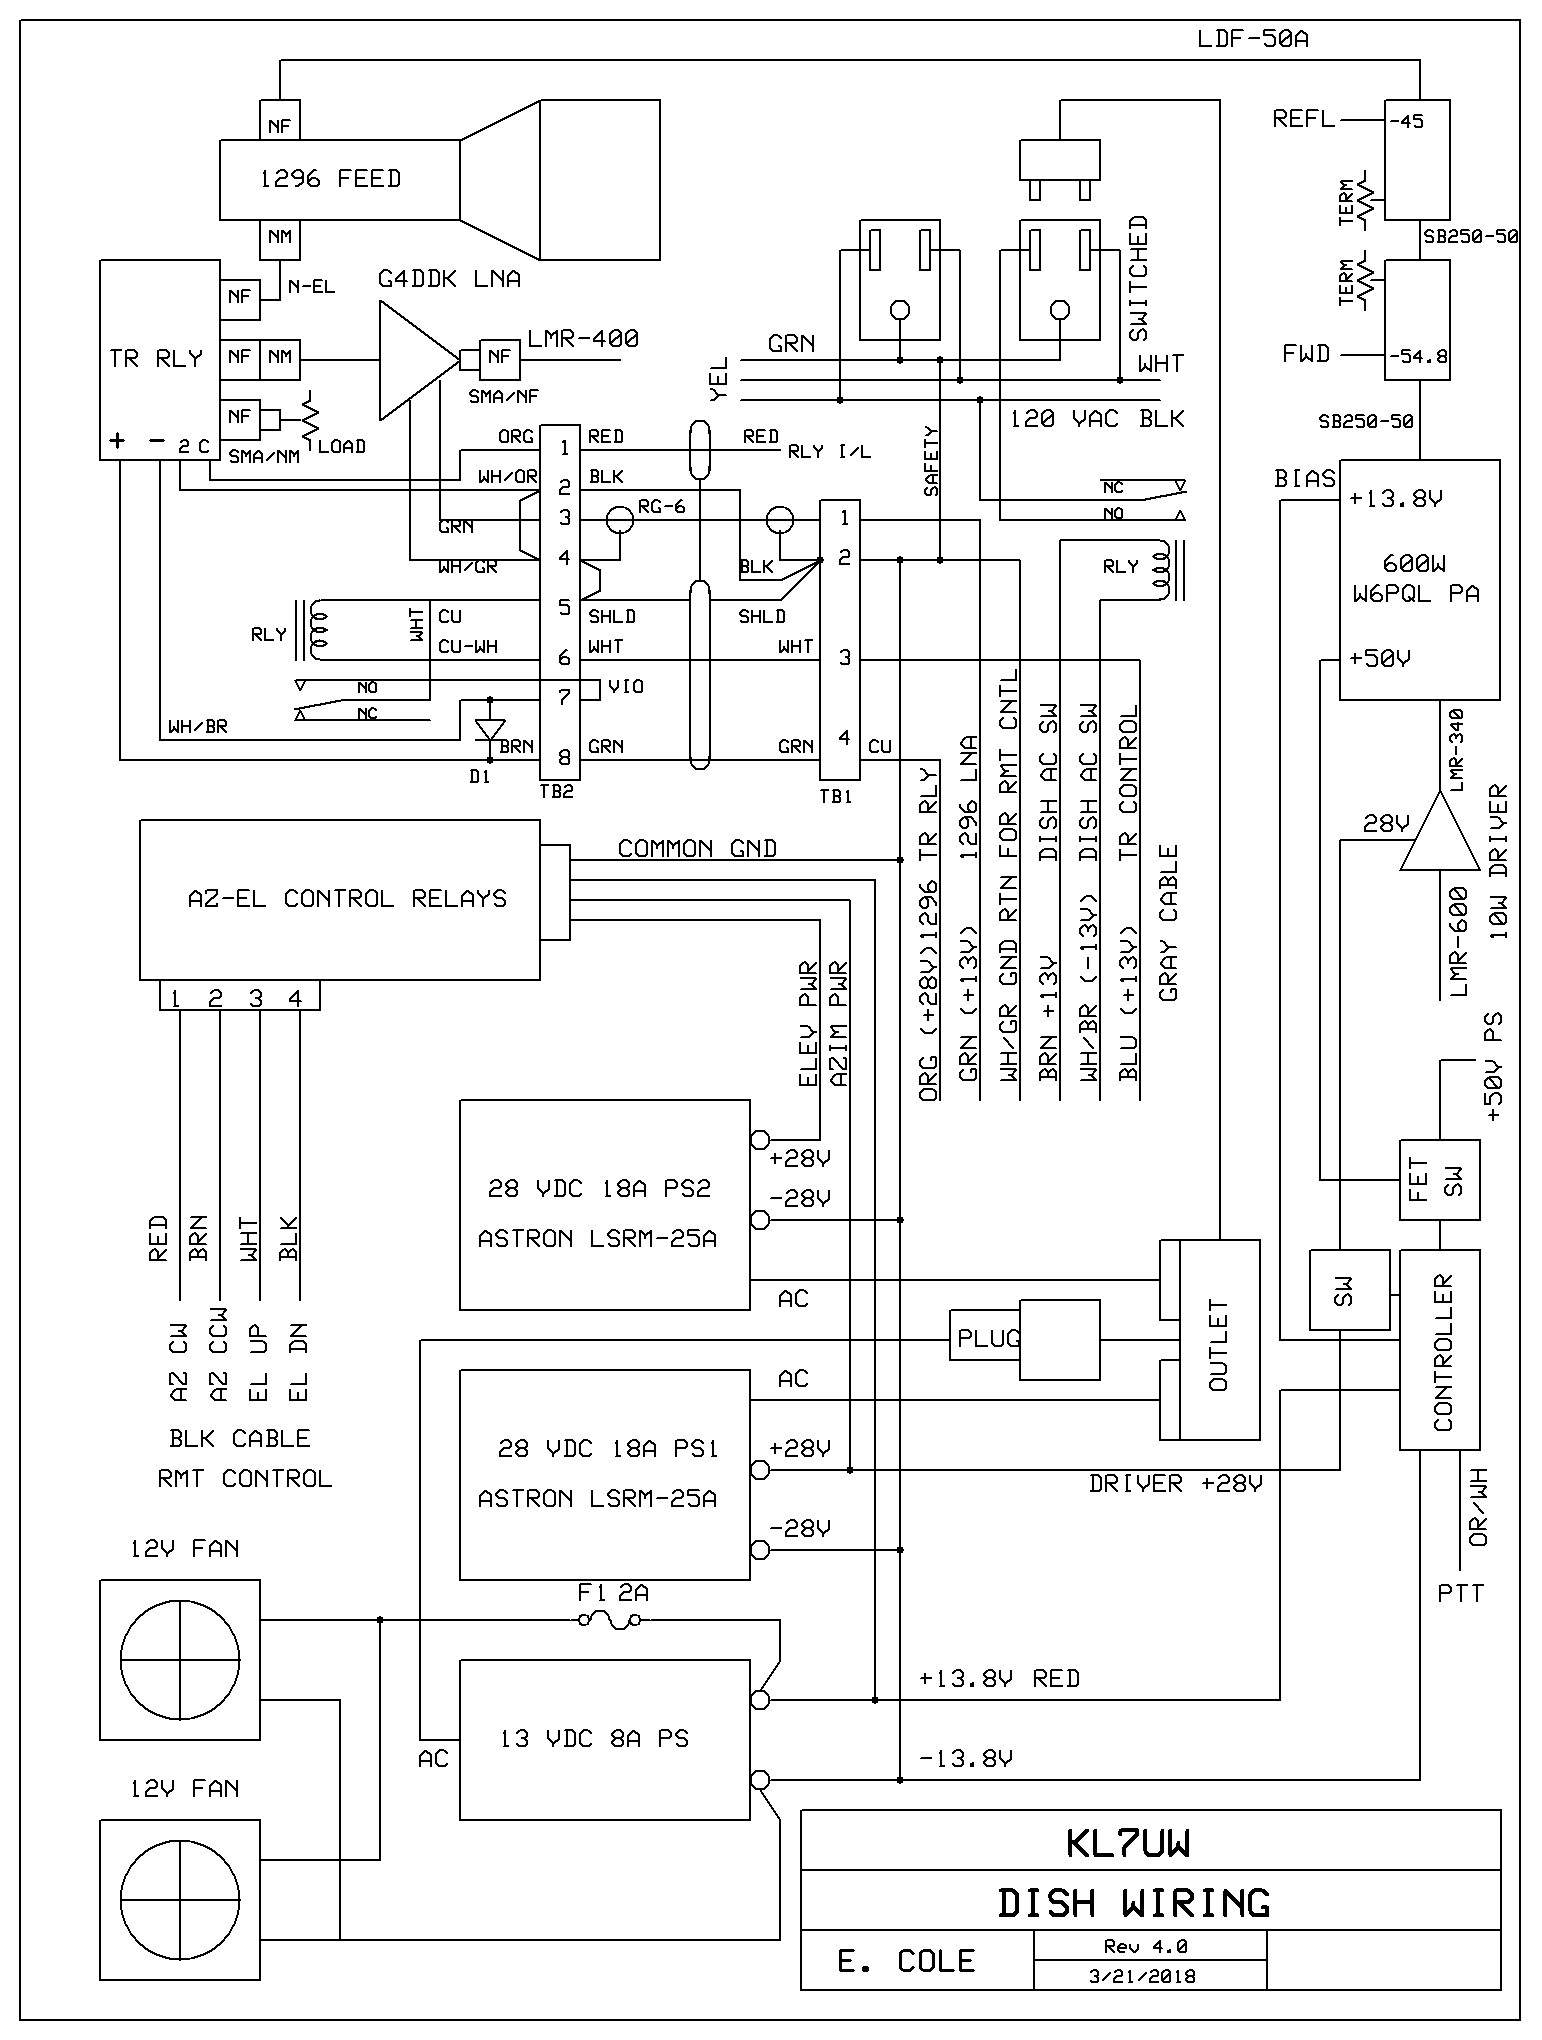 1296 Mhz 600w Amp Ham Shack Wiring Diagrams Fet Switch For The 50v Supply To And Two W6pql Rf Dectector Boards Monitoring Forward Reflected Power Remotely In